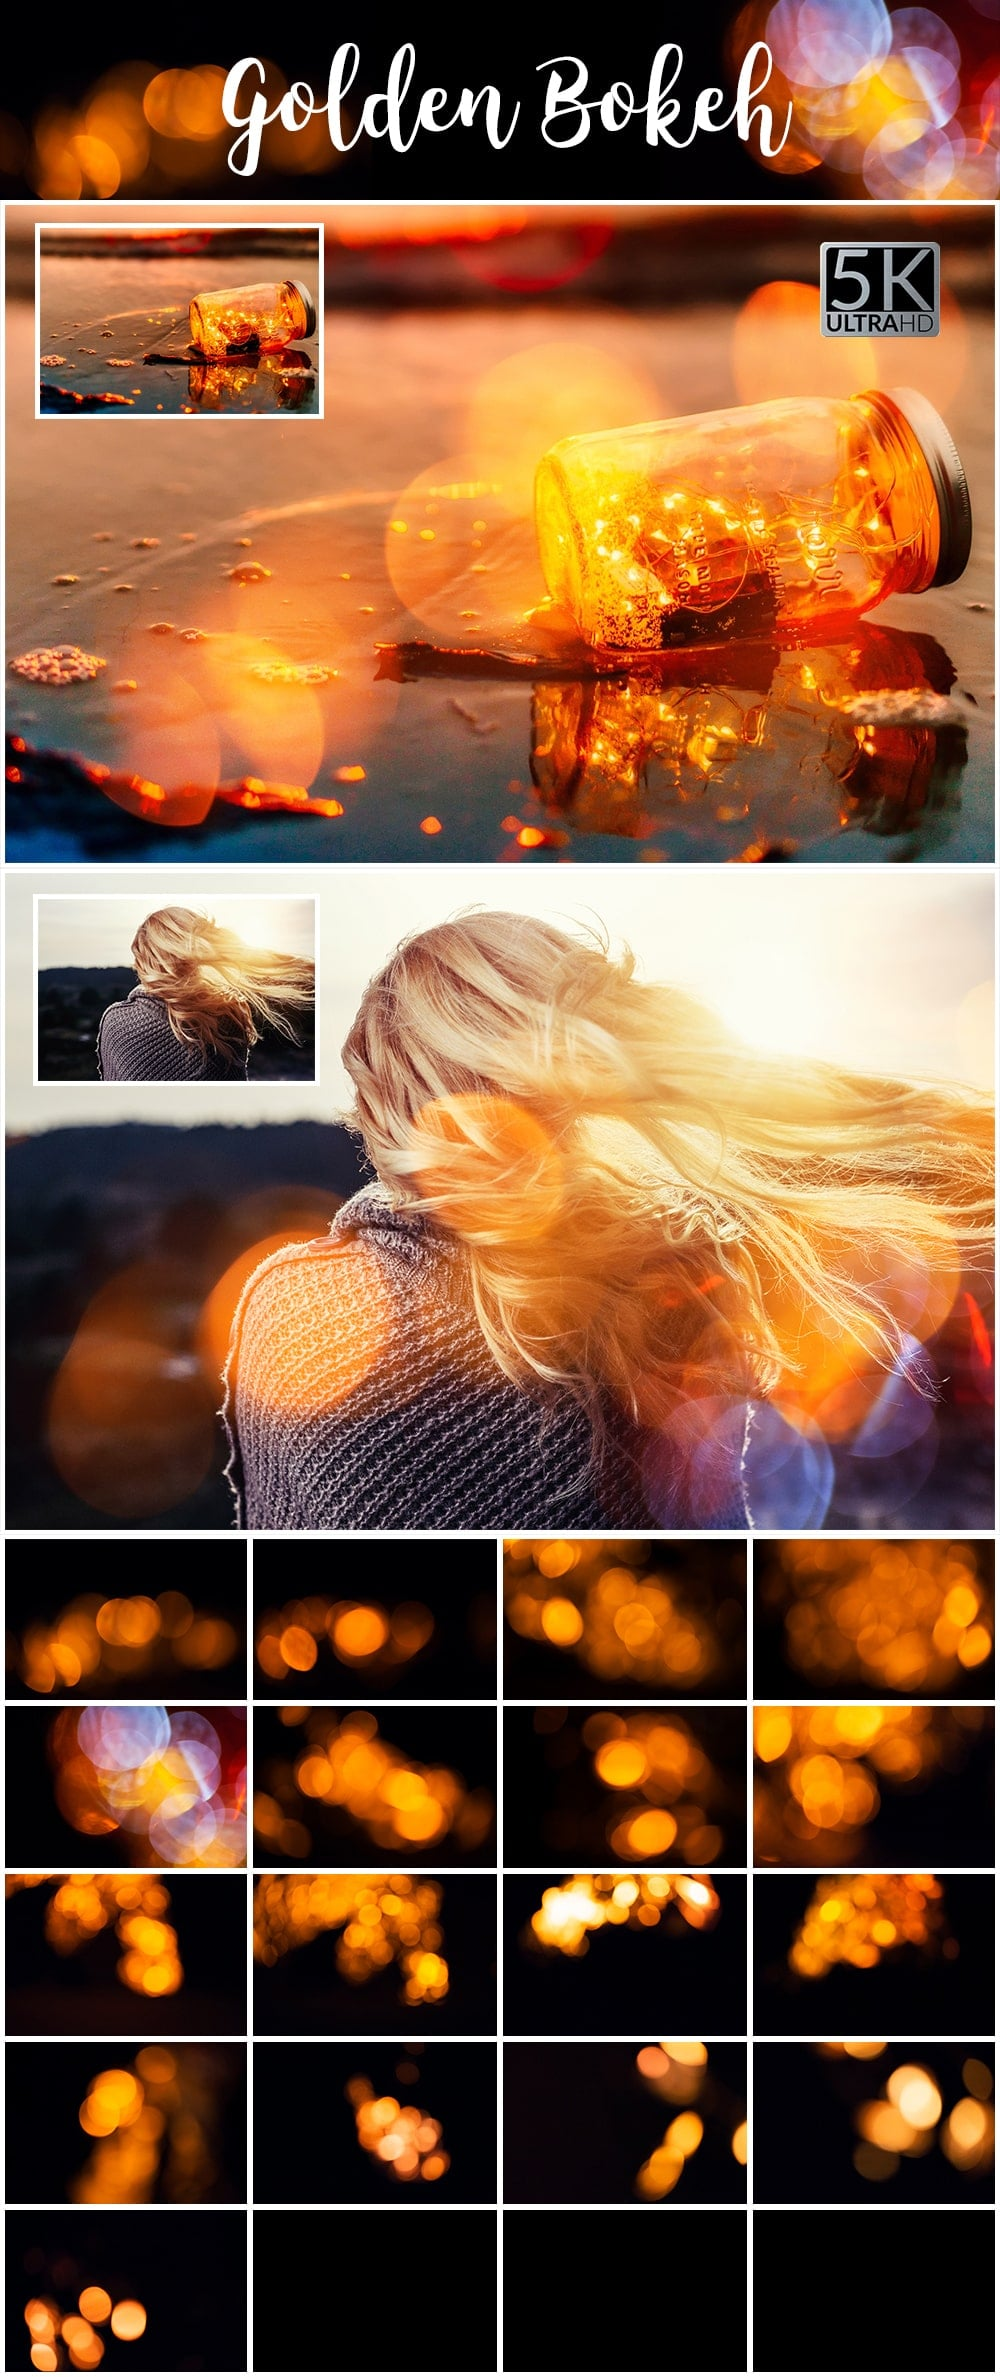 Over 11 400 Aesthetic Overlays Bundle SPECIAL OFF 98% - 12 Golden Bokeh min